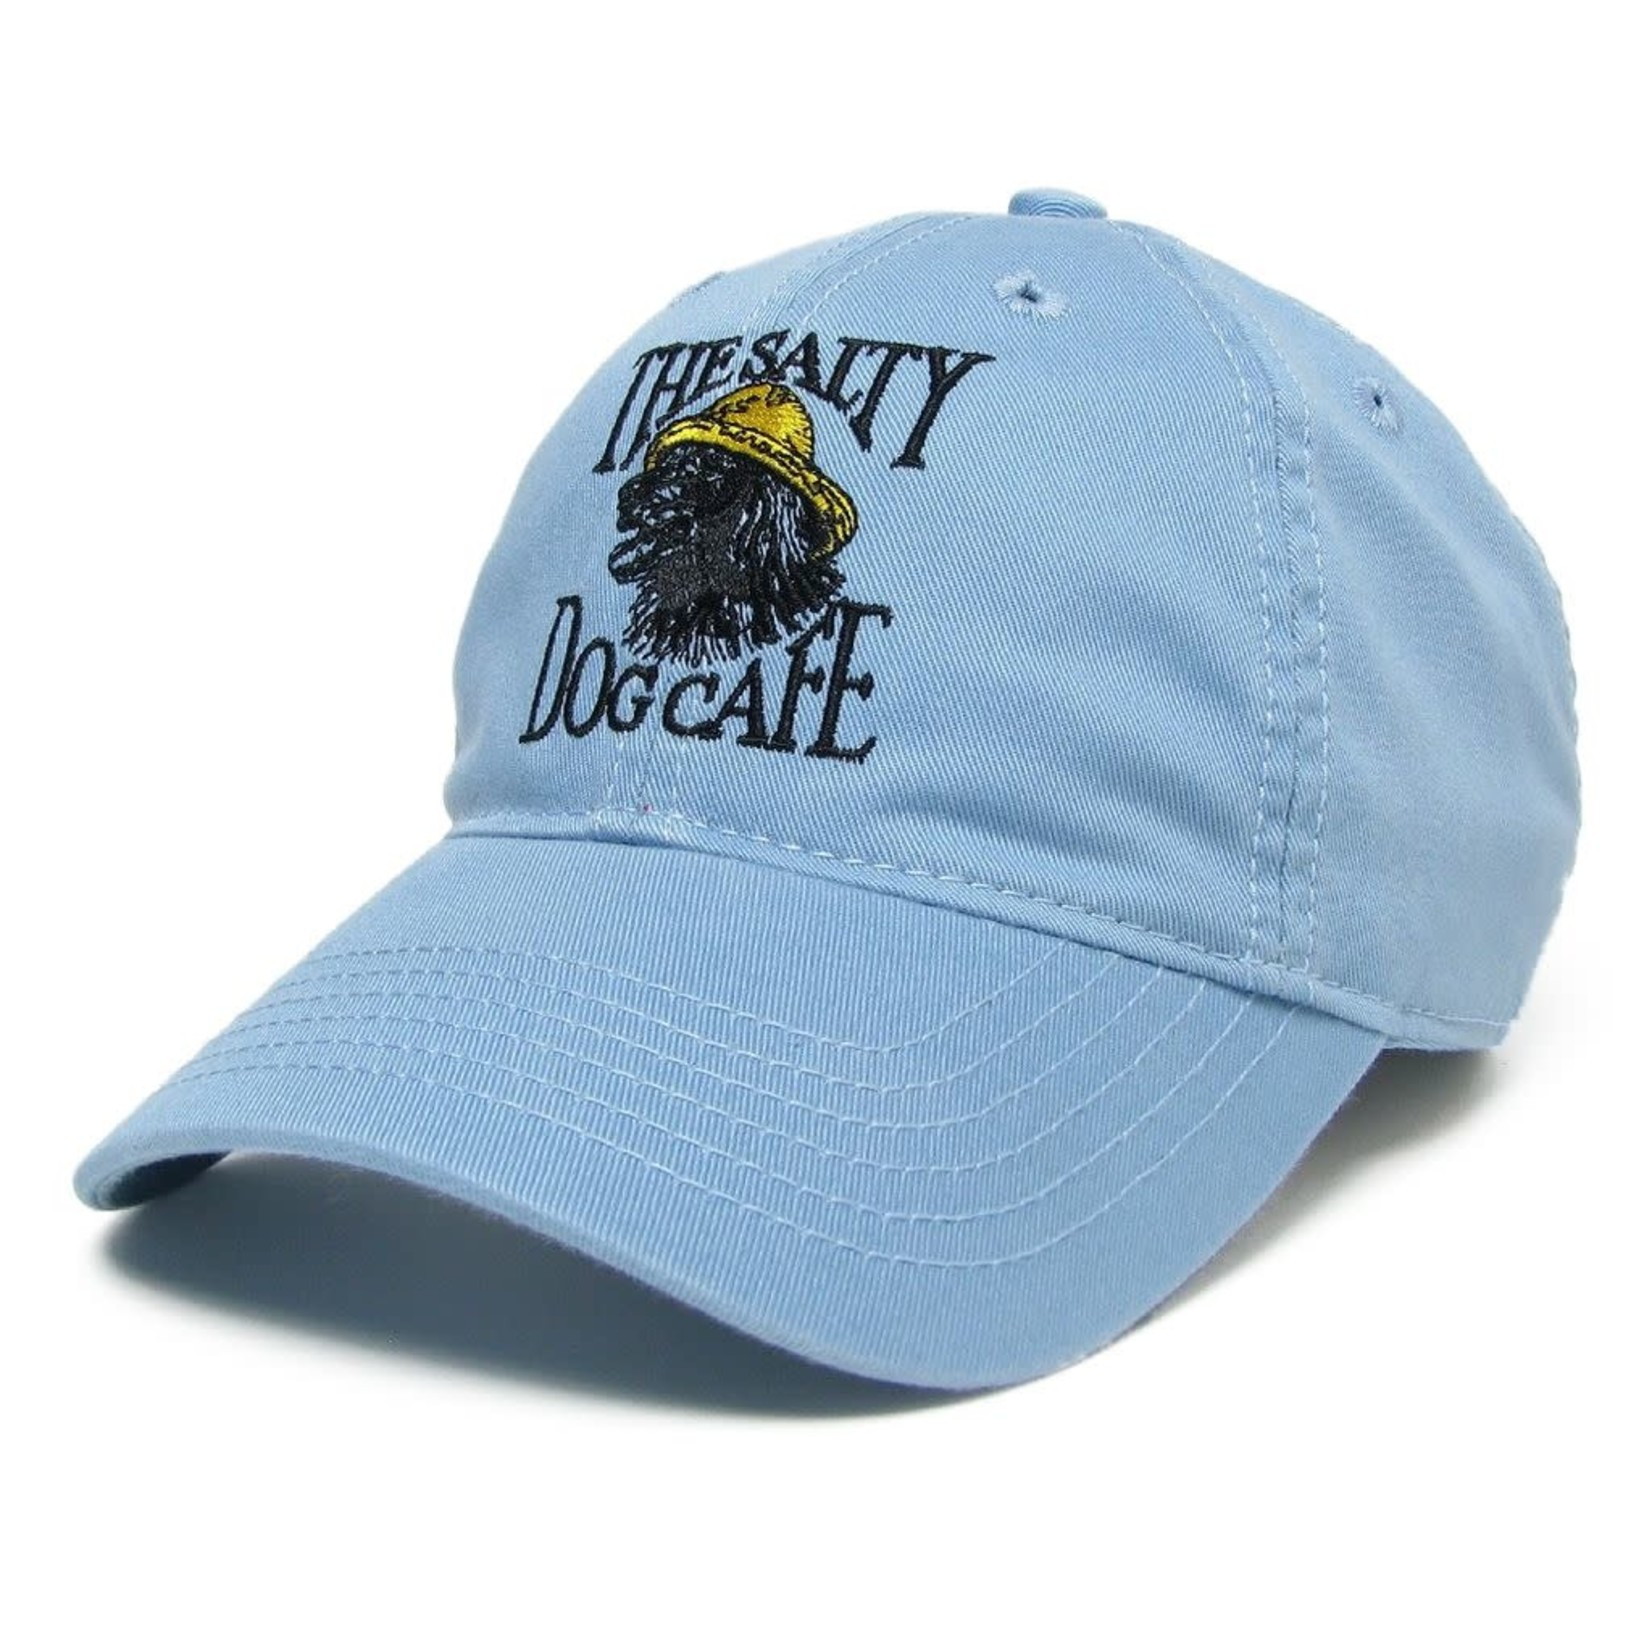 Hat - Youth Twill - Vintage, Light Blue, Youth